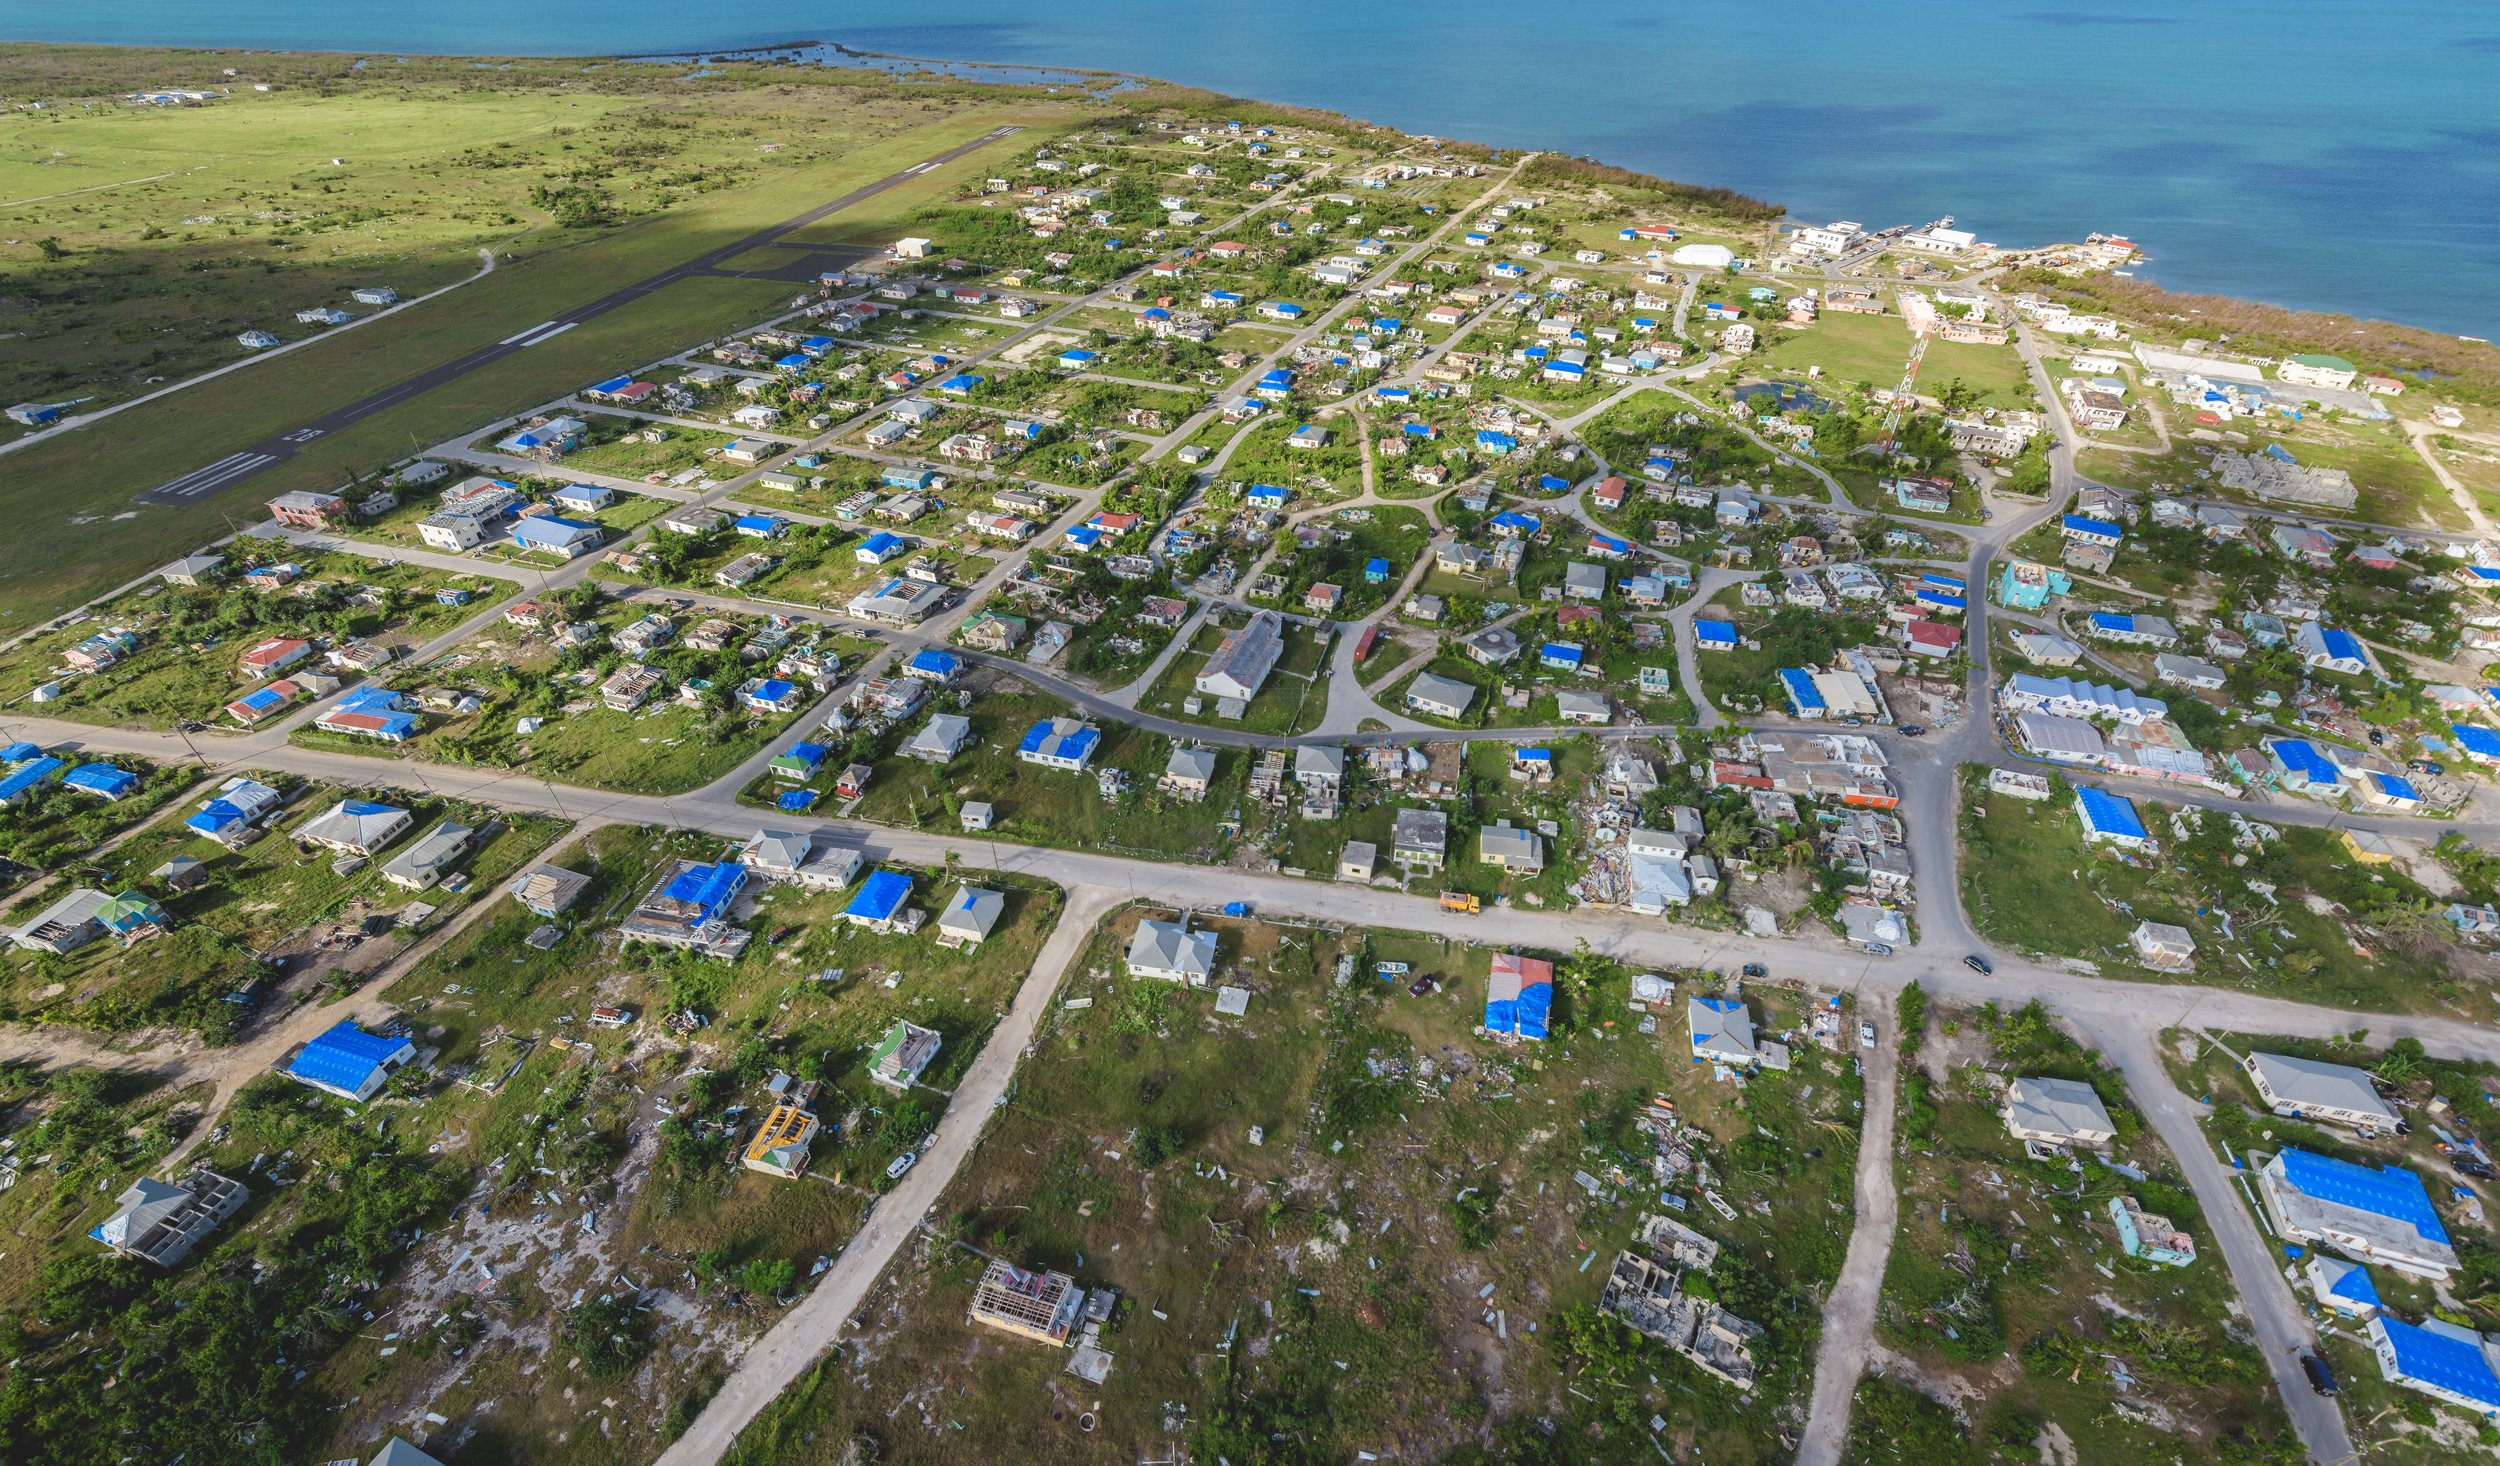 Codrington, Barbuda - A bird's eye view captures evidence of the relief efforts far and wide.